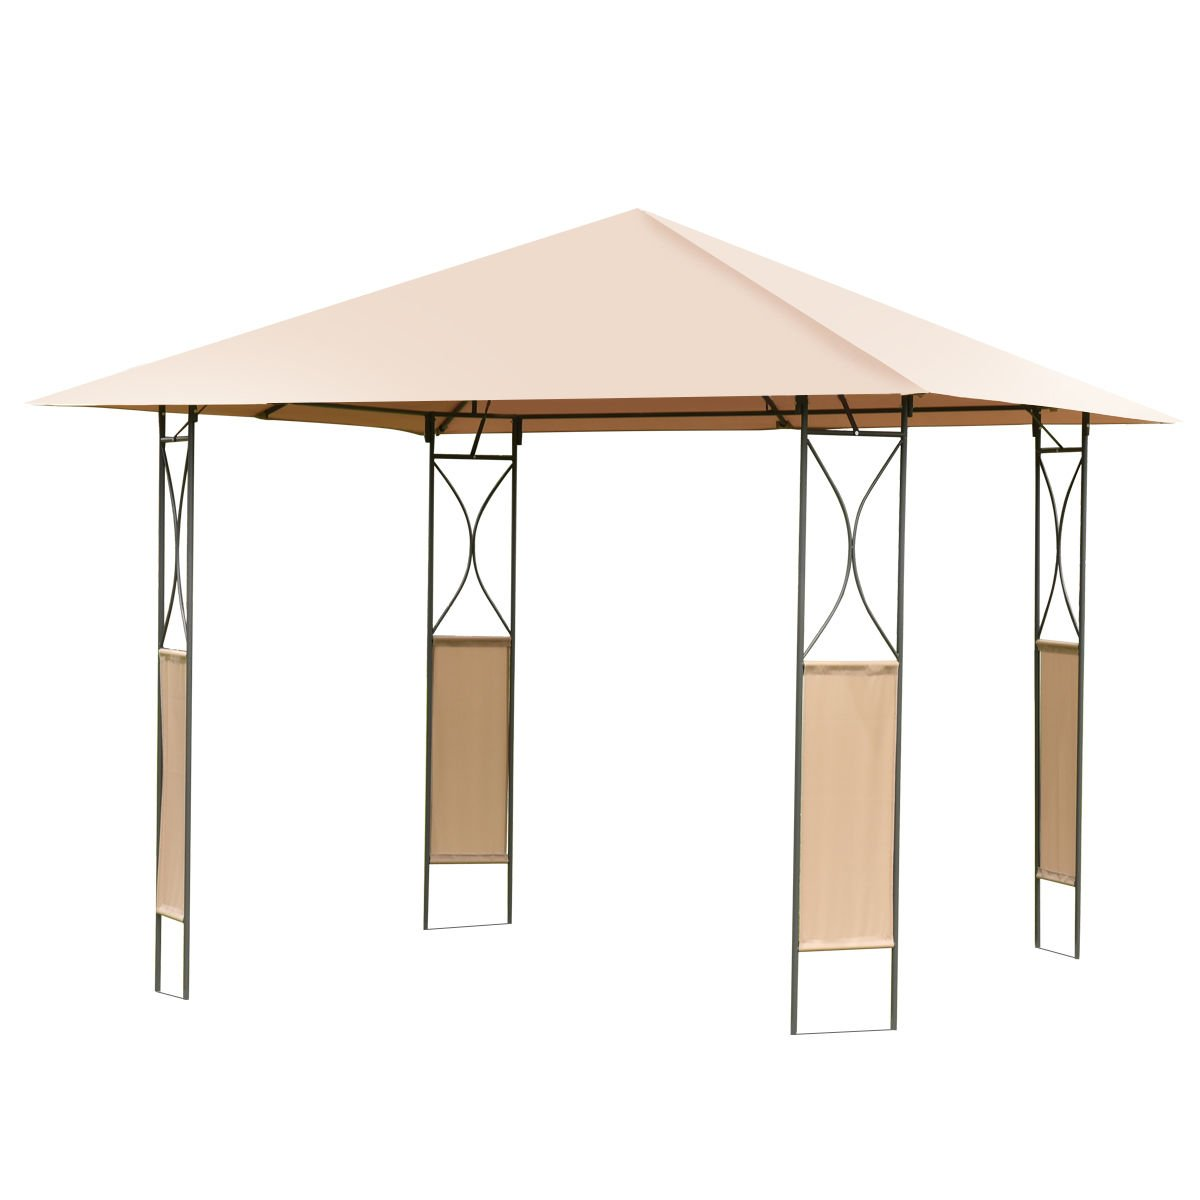 10'x10' Square Gazebo Canopy Tent Shelter Awning Garden Patio W/Brown Cover + FREE E-Book